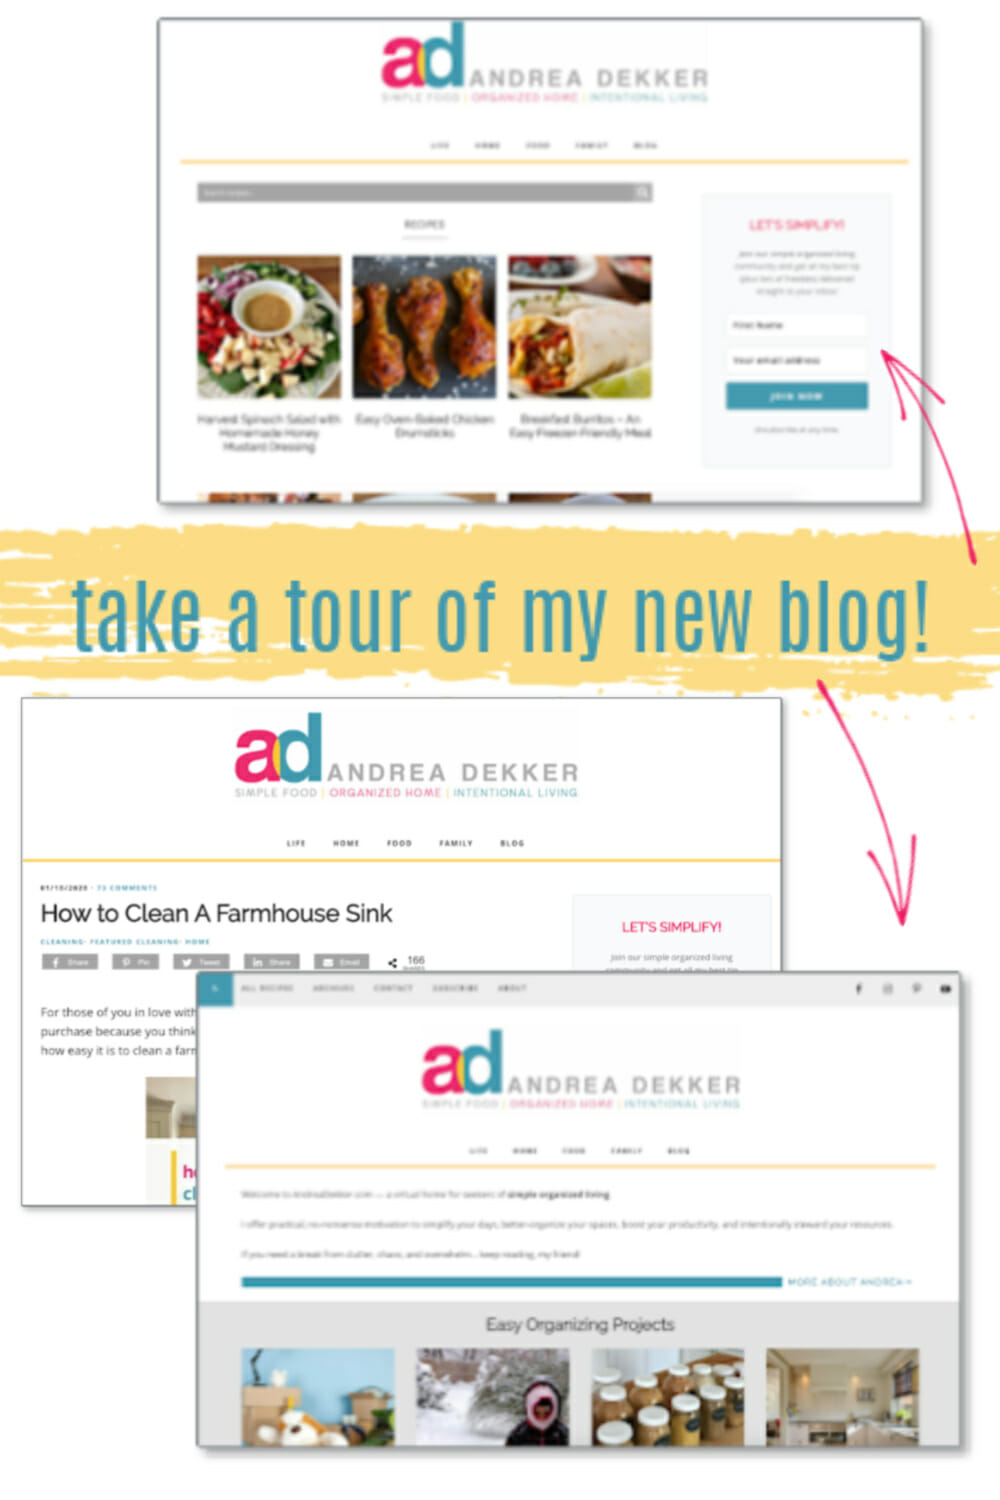 My blog got a HUGE (and very overdue) update -- yay! The design looks so clean, bright, fresh, and clutter-free... and the new logo + tagline couldn't be more perfect for my current blog and business vision! I can't wait to show you around. Click through to take a video tour with me! via @andreadekker